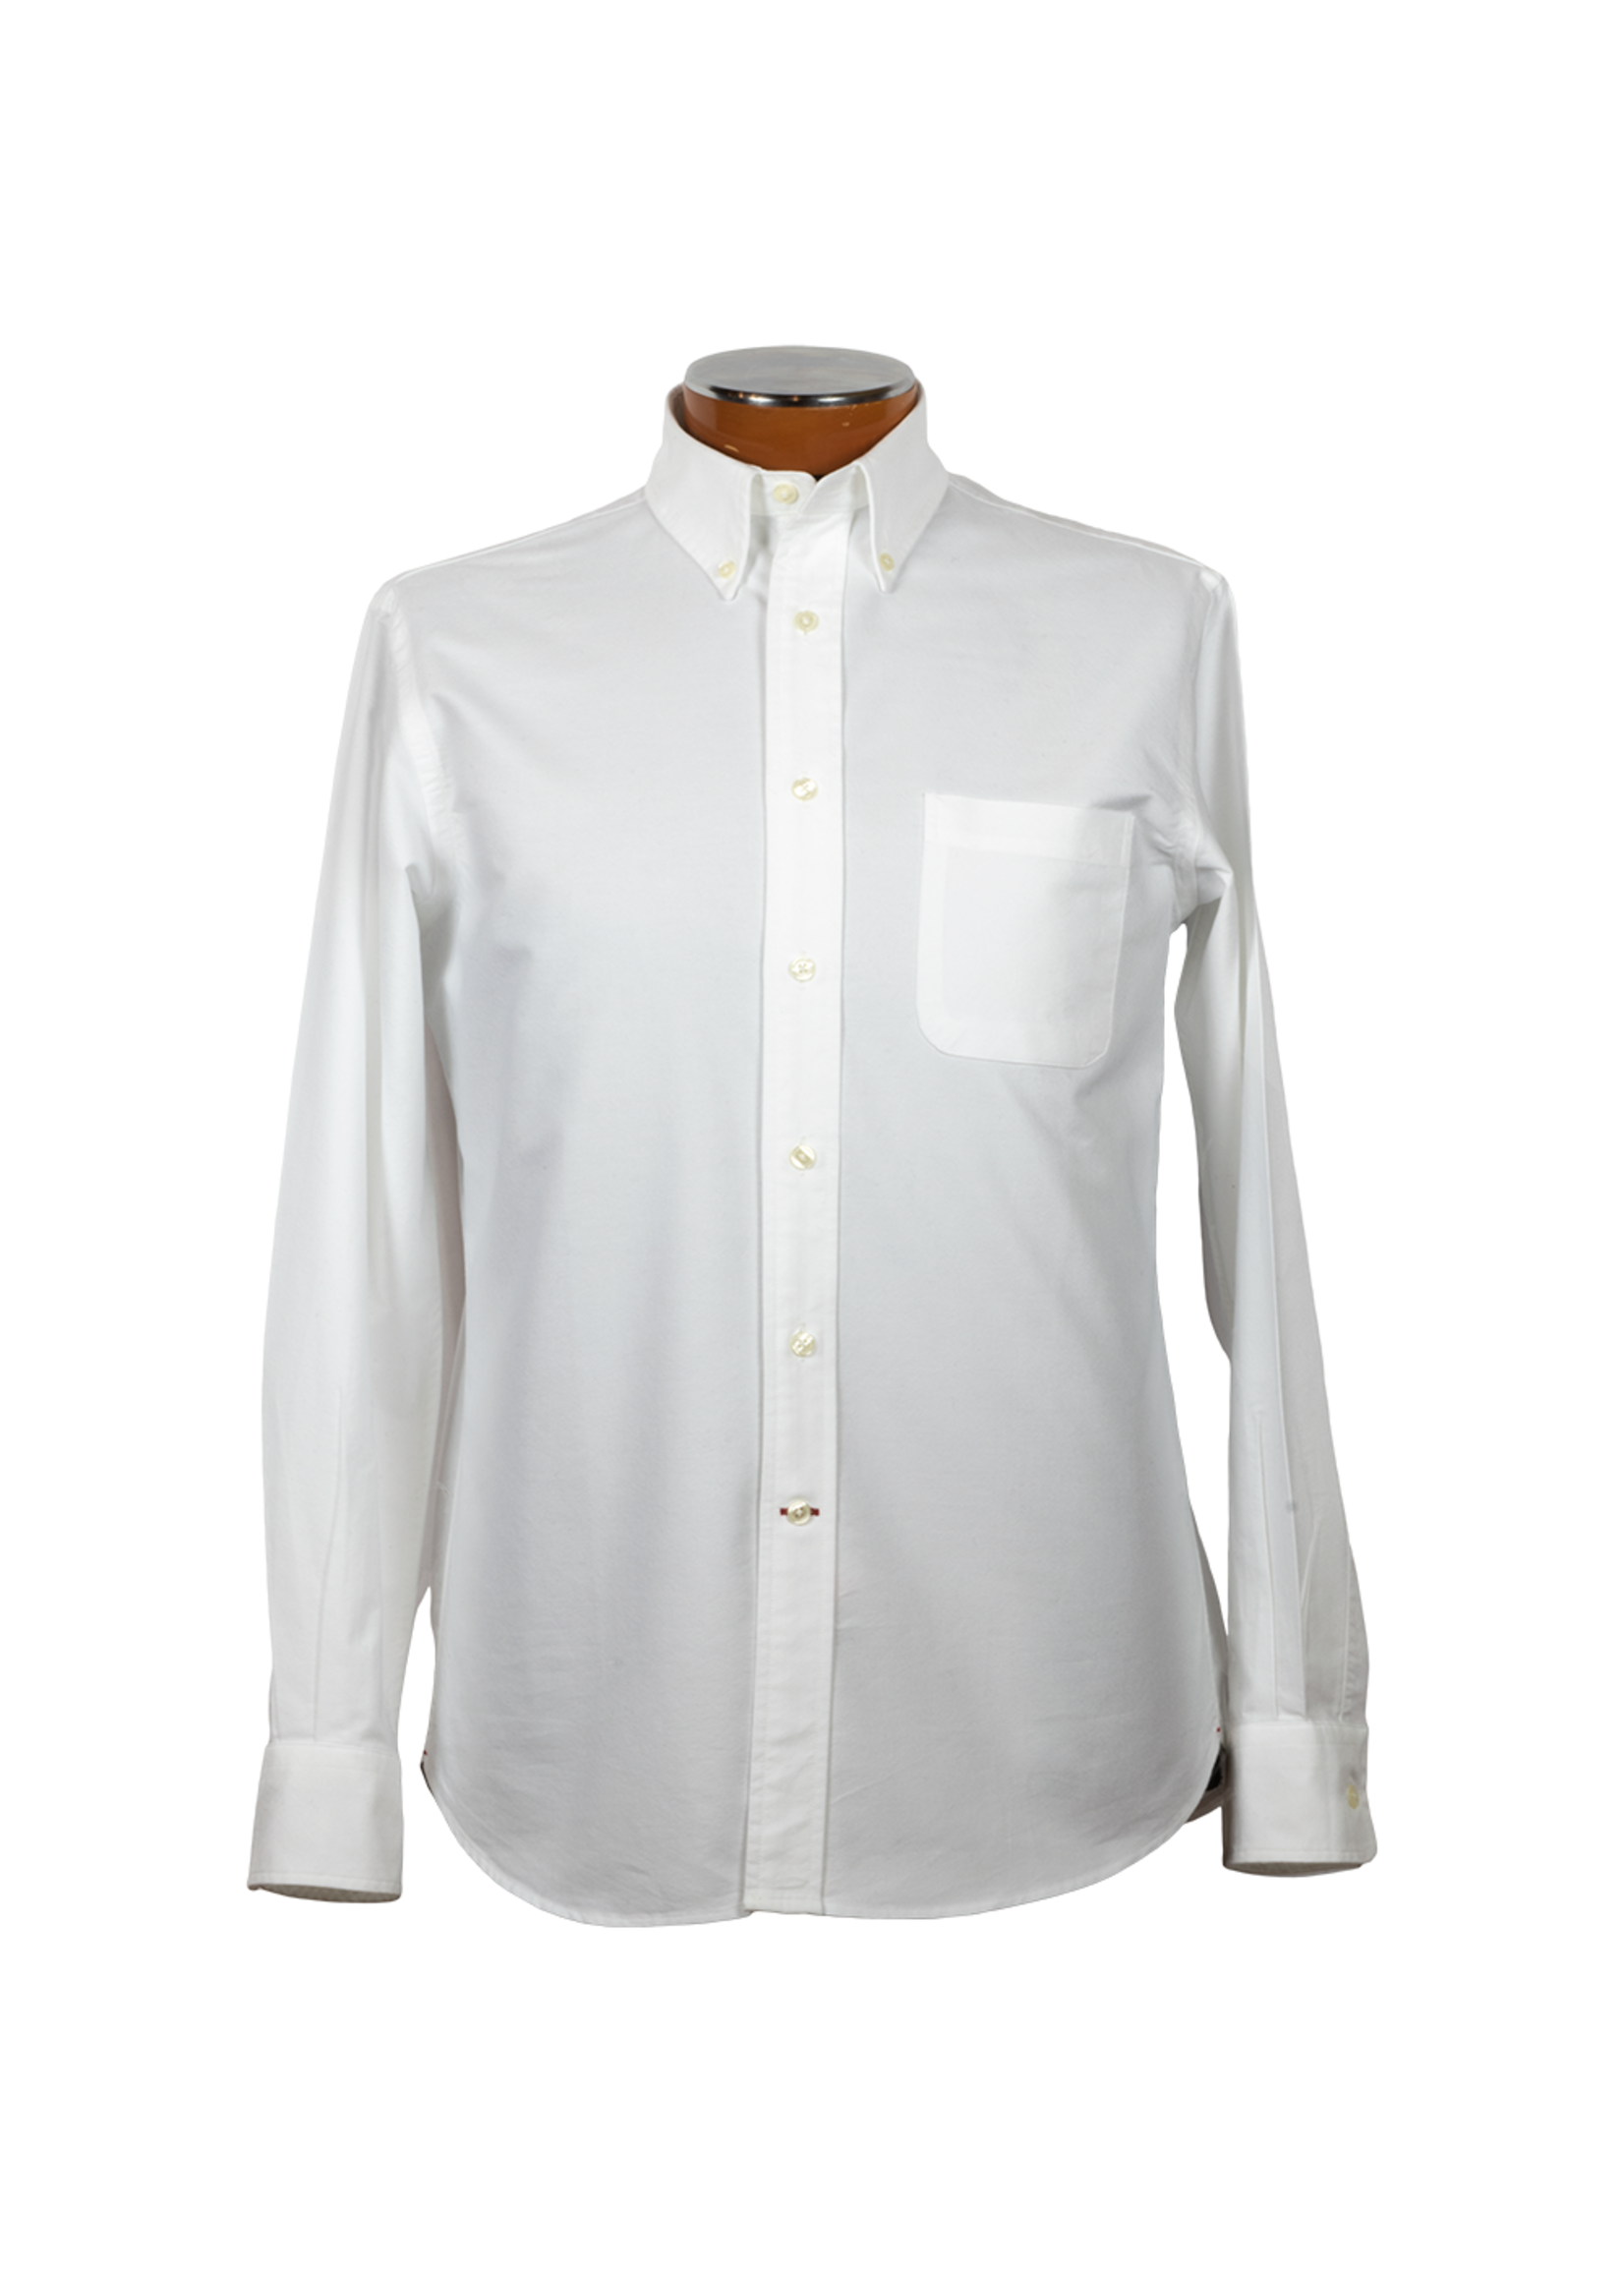 Drinkwater's Drinkwater's White Cambridge Oxford Buttondown Shirt